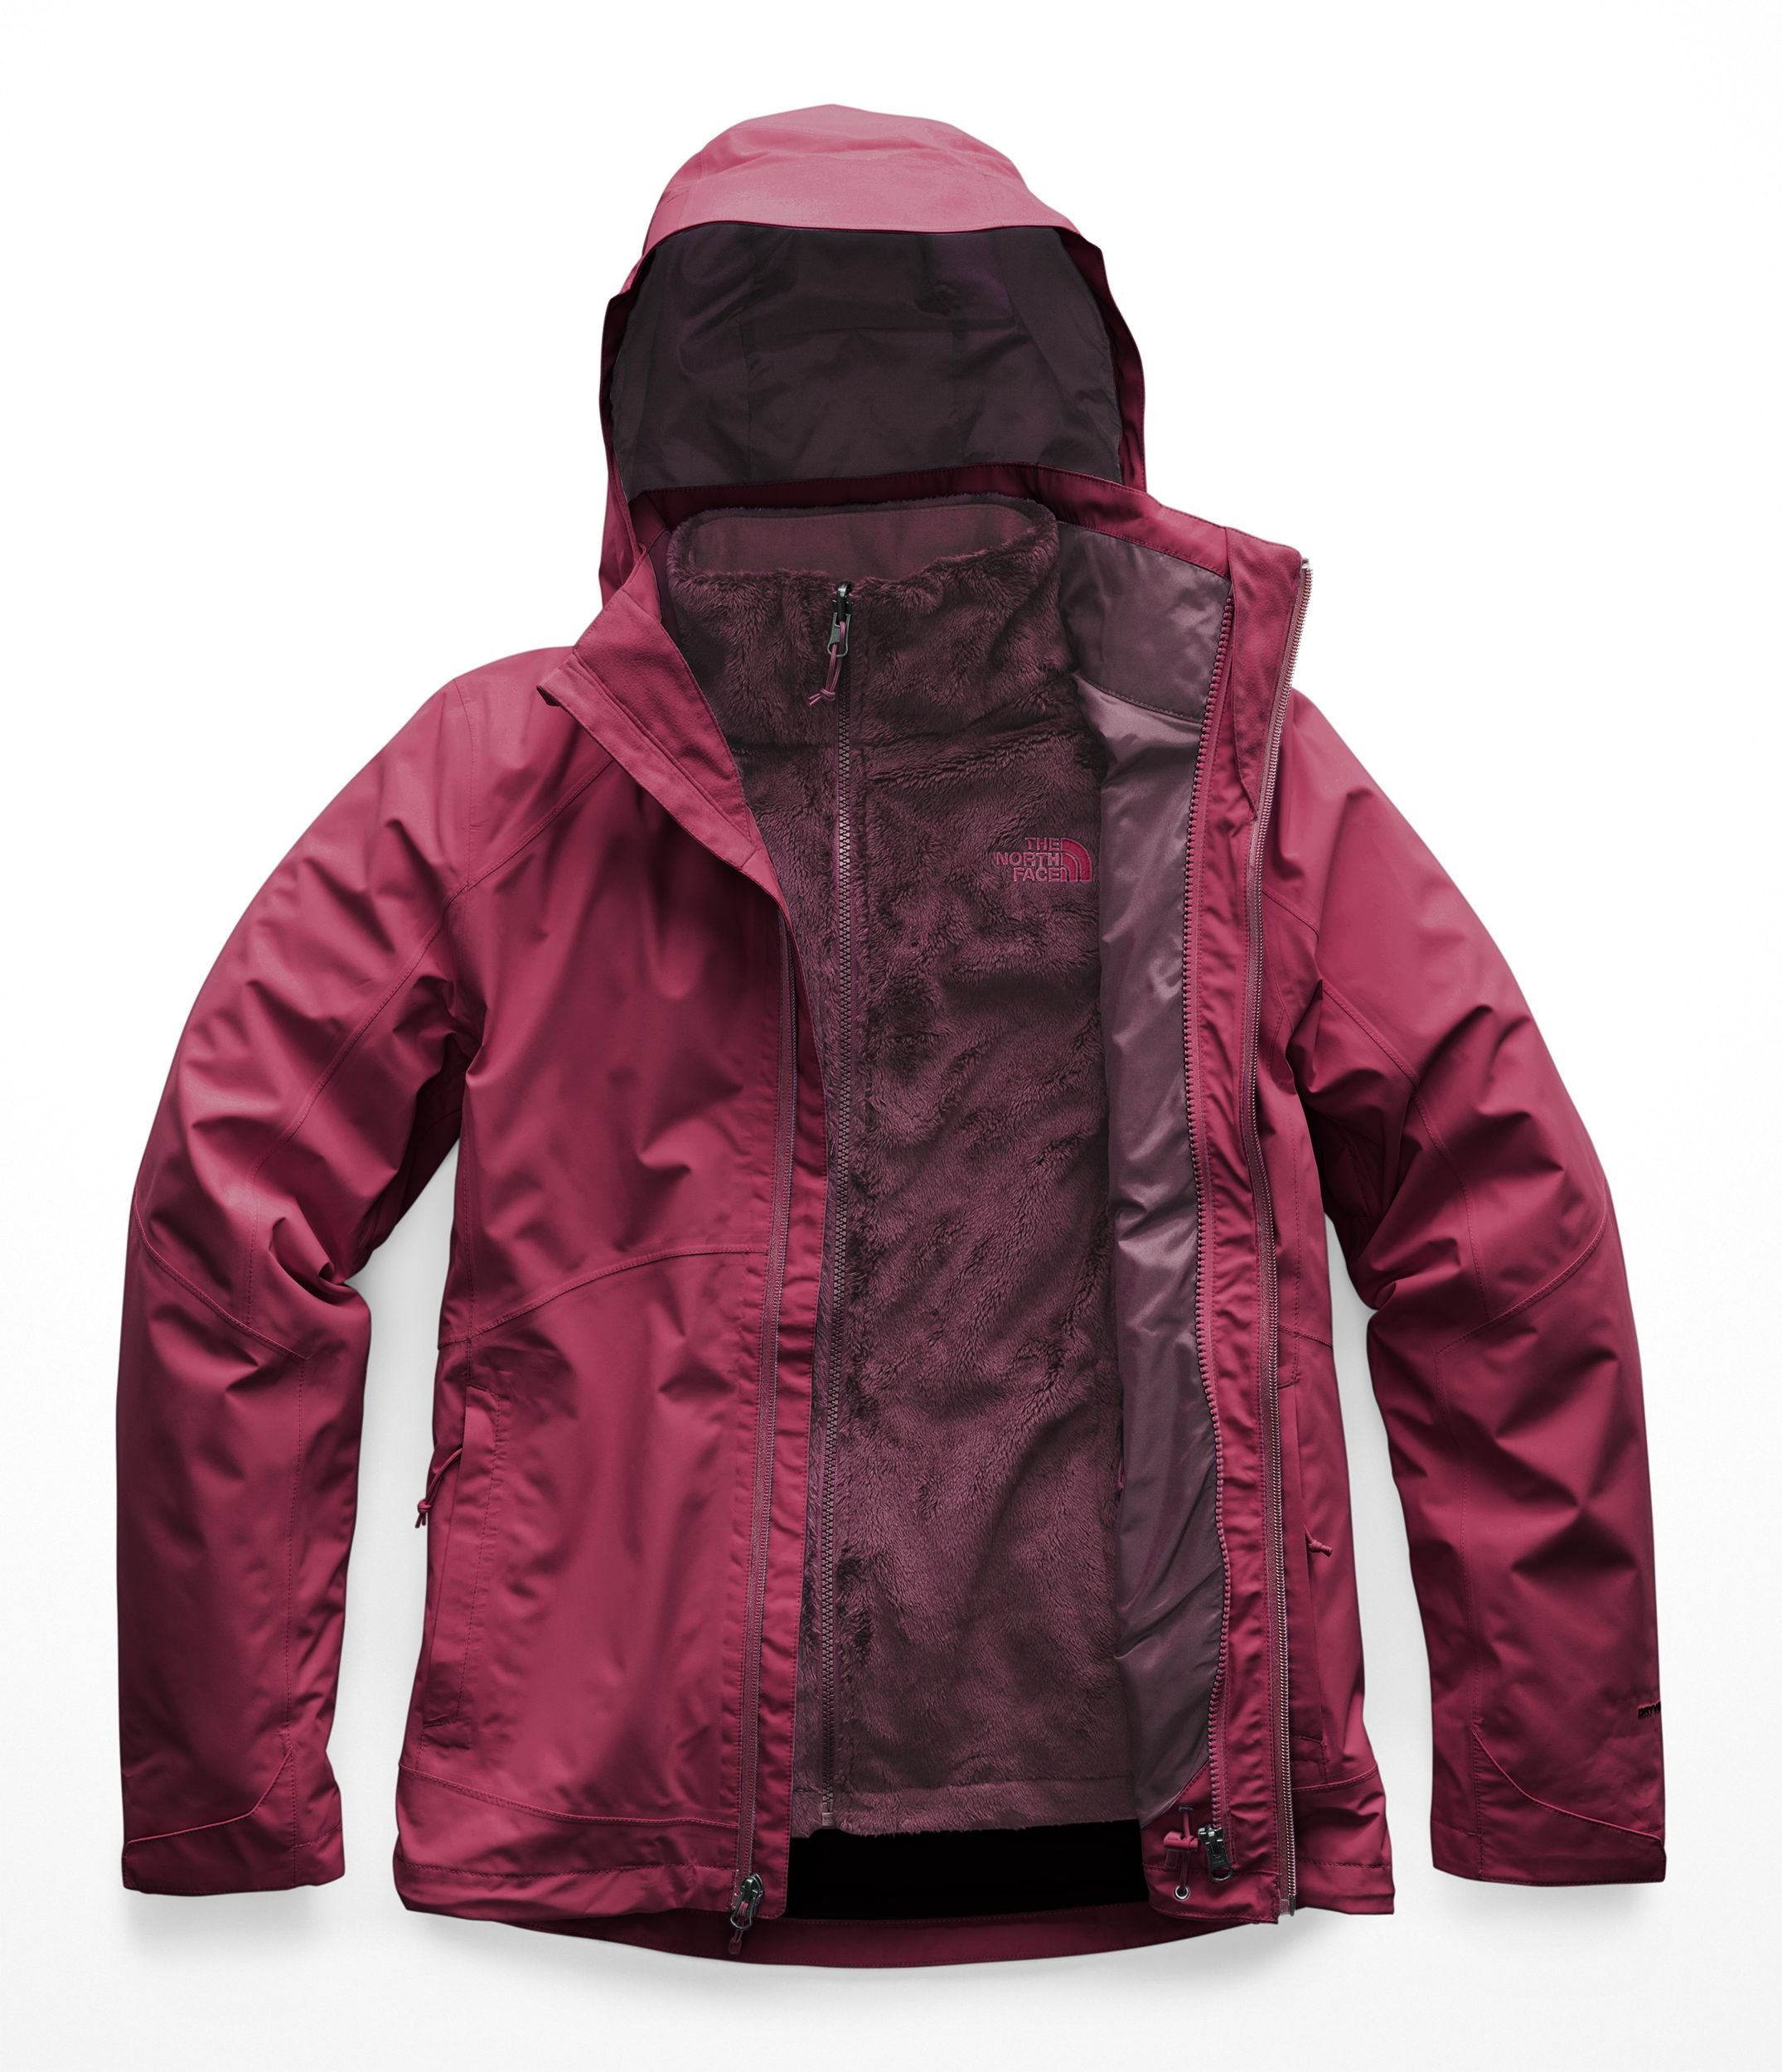 The North Face Women's Osito Triclimate Jacket - Rumba Red & Rumba Red - S by The North Face